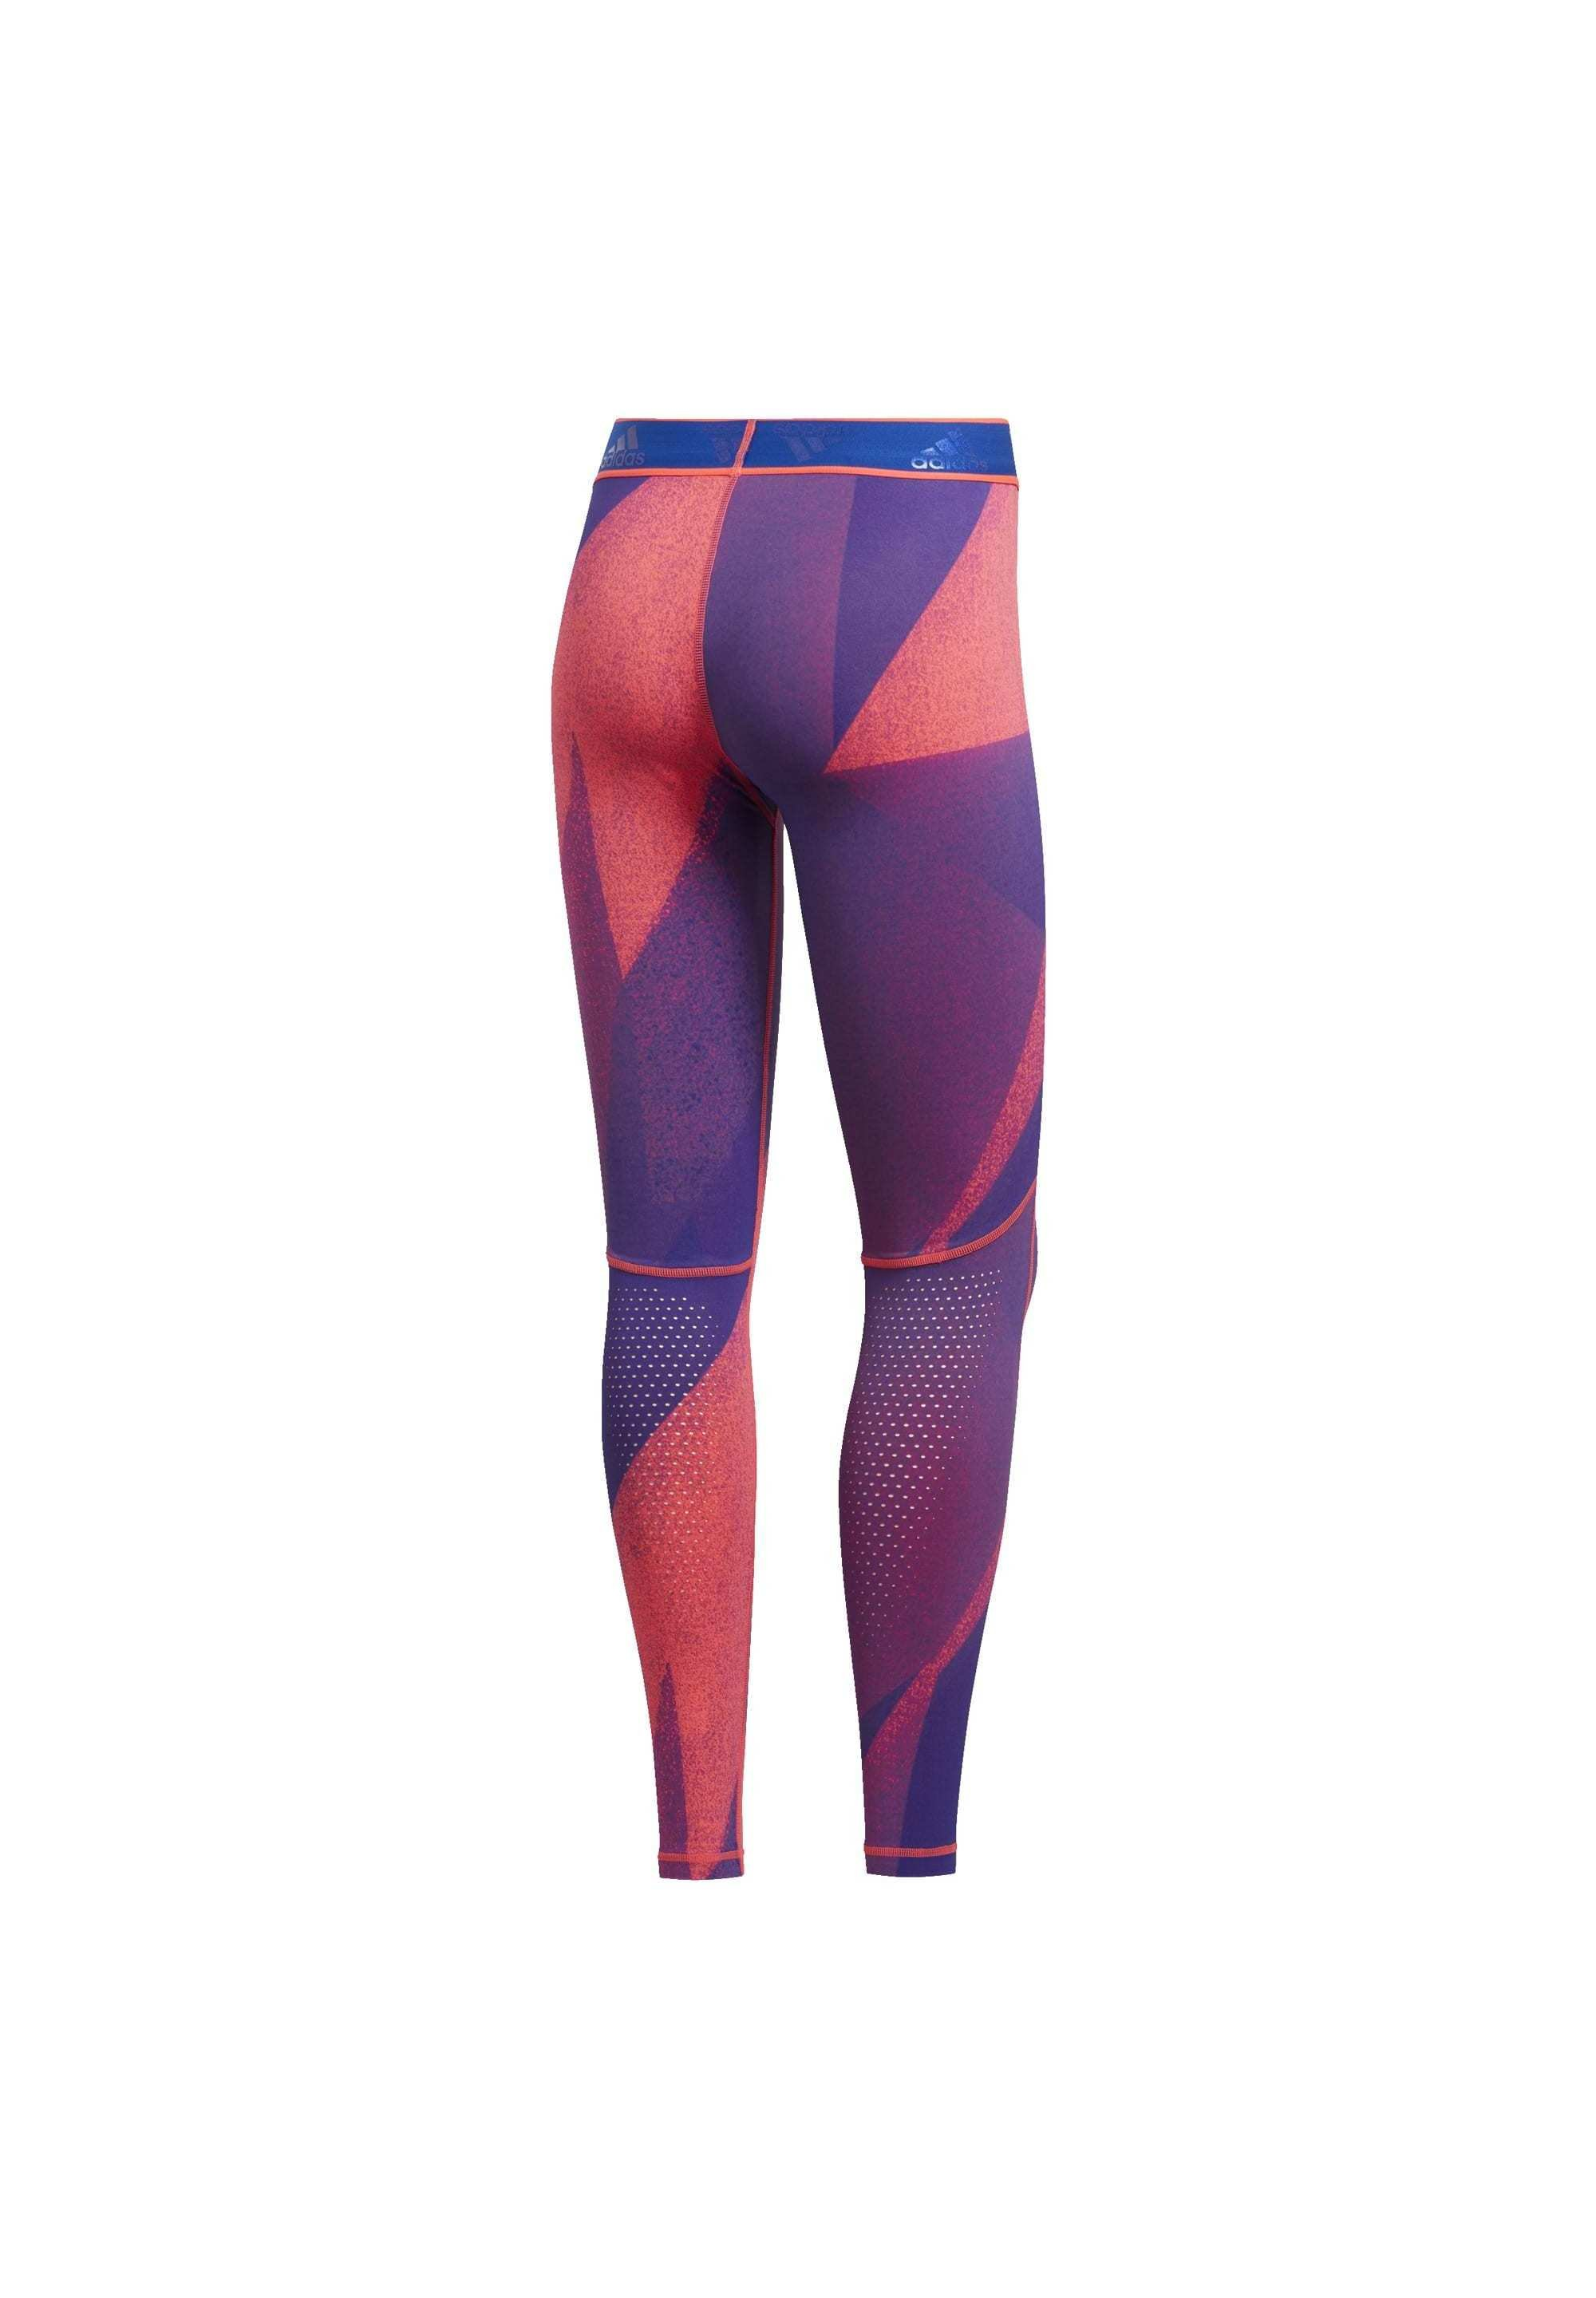 Outlet Women's Clothing adidas Performance ALPHASKIN GRAPHIC LONG LEGGINGS Leggings pink lKskv2DJH